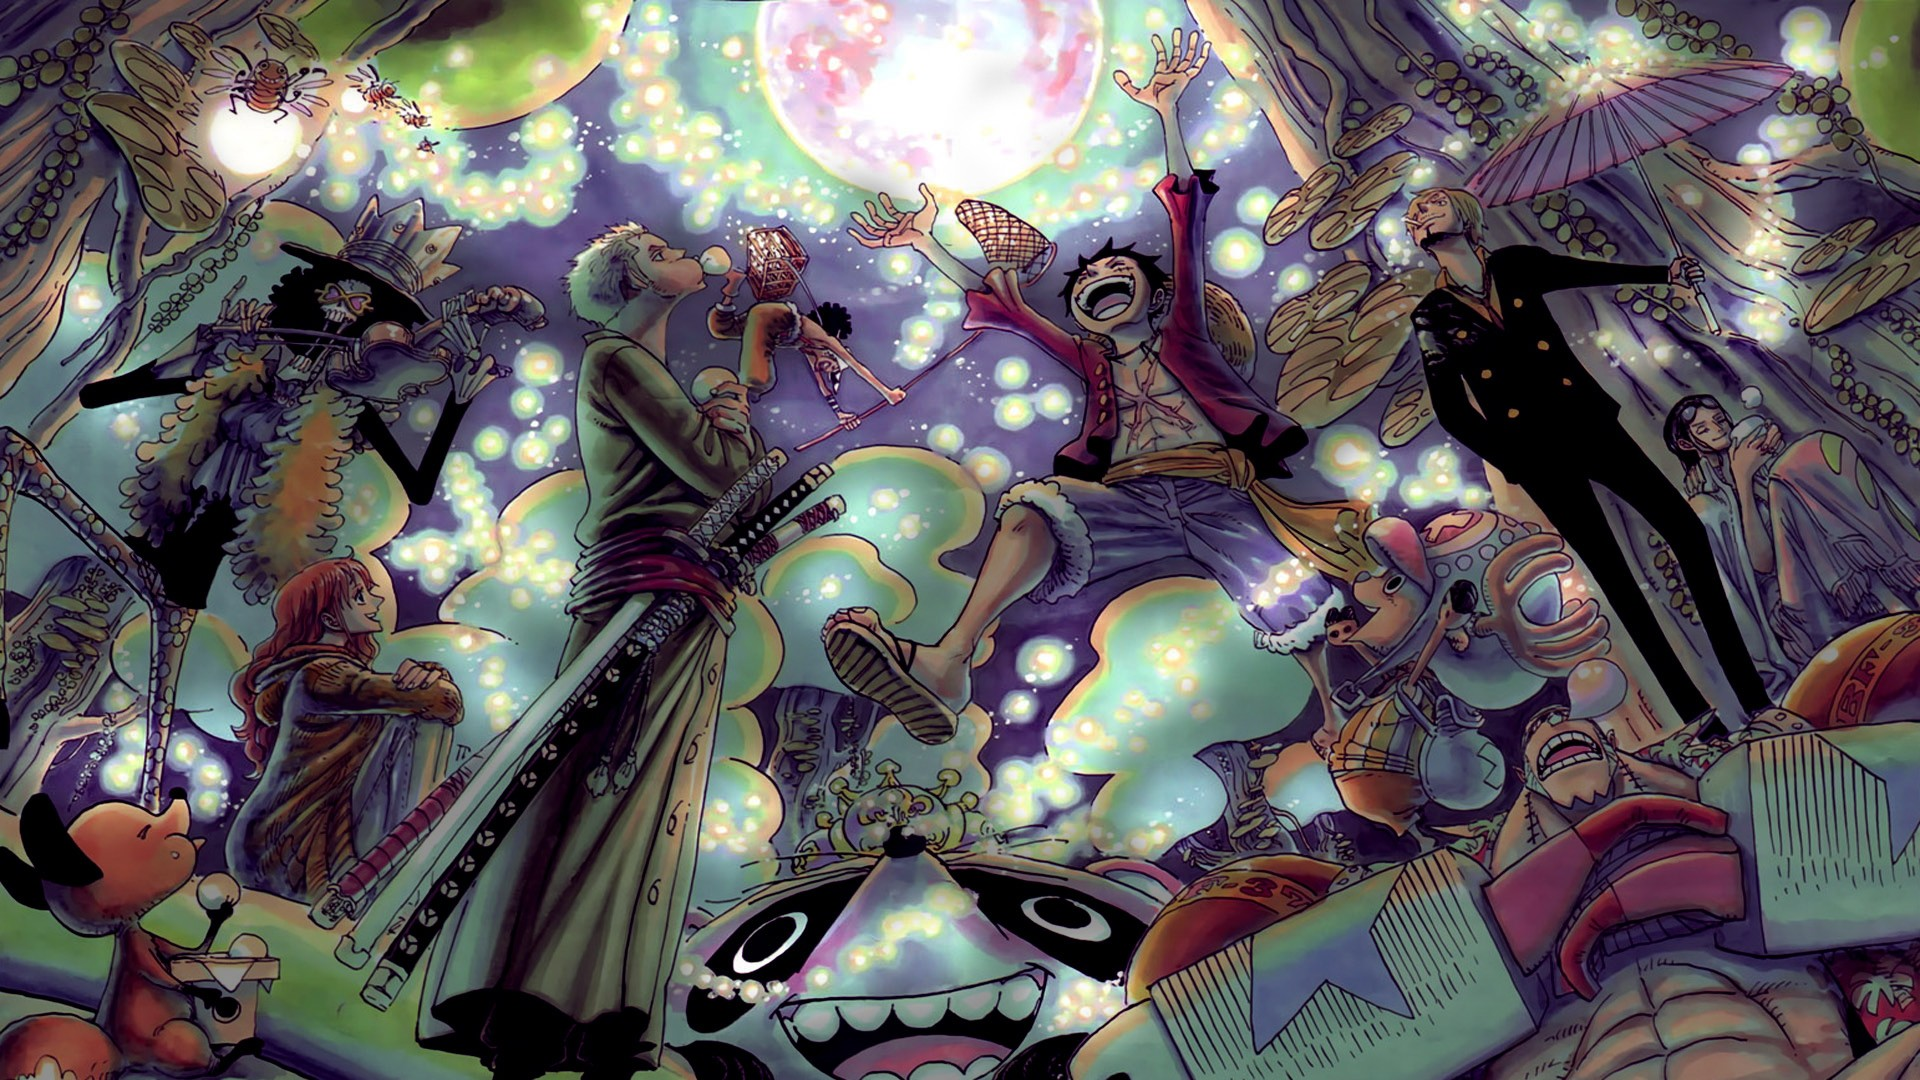 Exelwallz Anime Wall World: Console.Writeline(¨One Piece HD !¨)